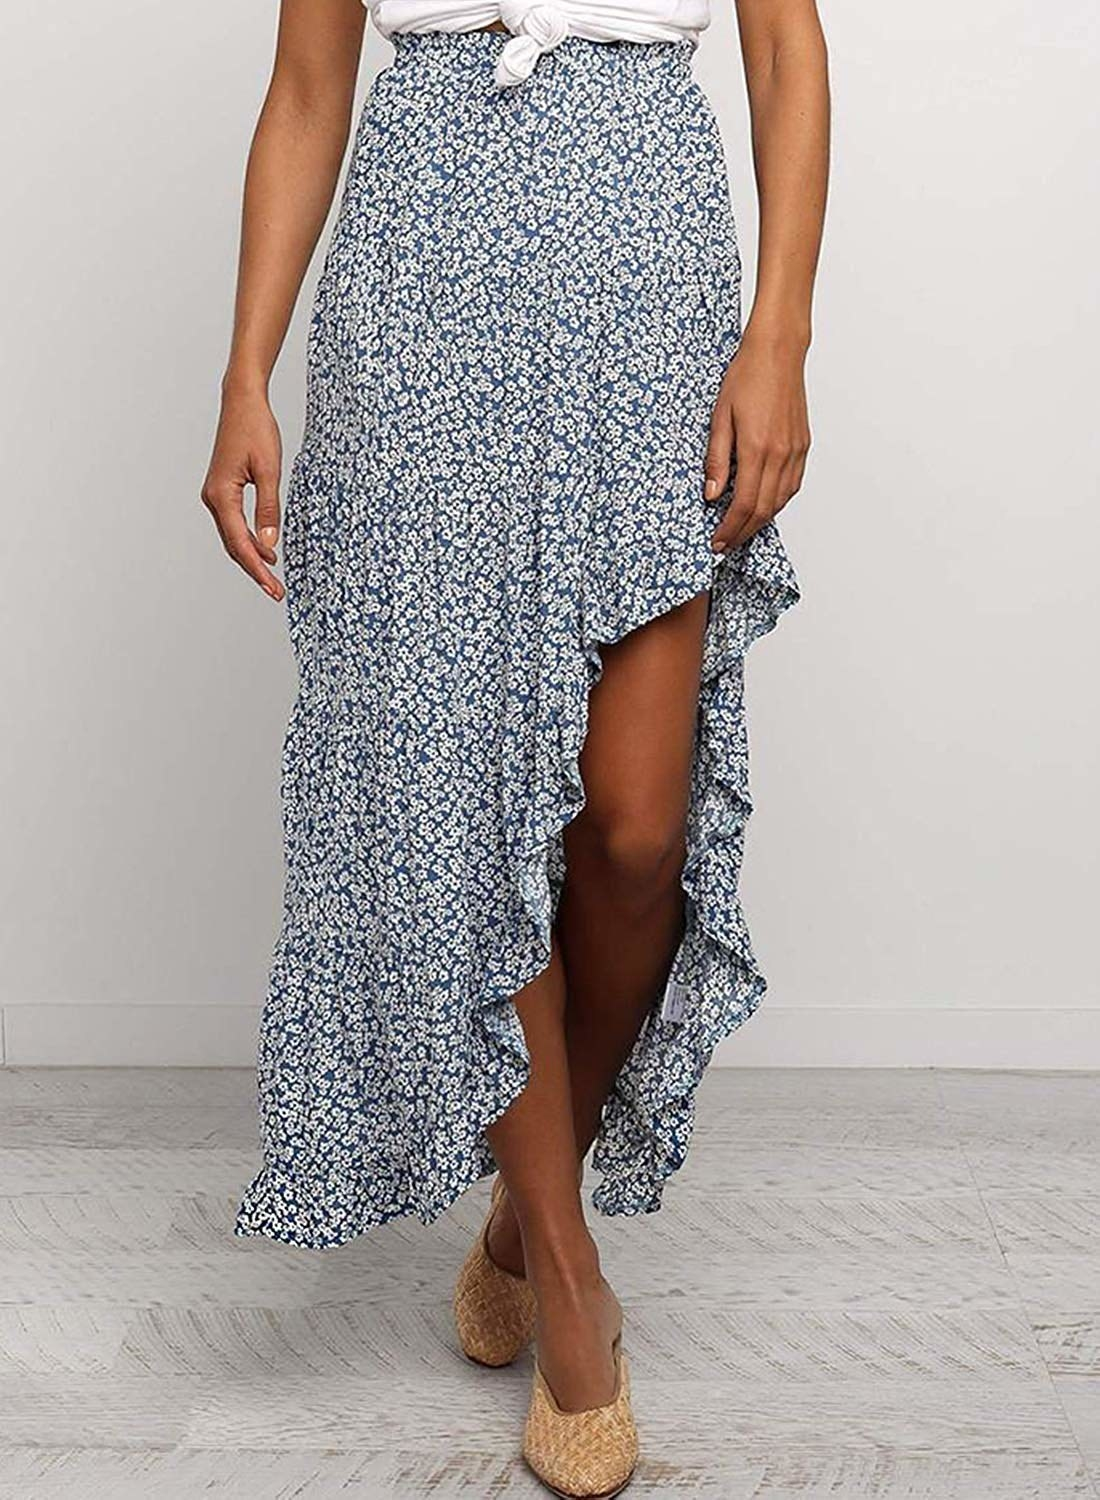 A model wearing the maxi skirt.